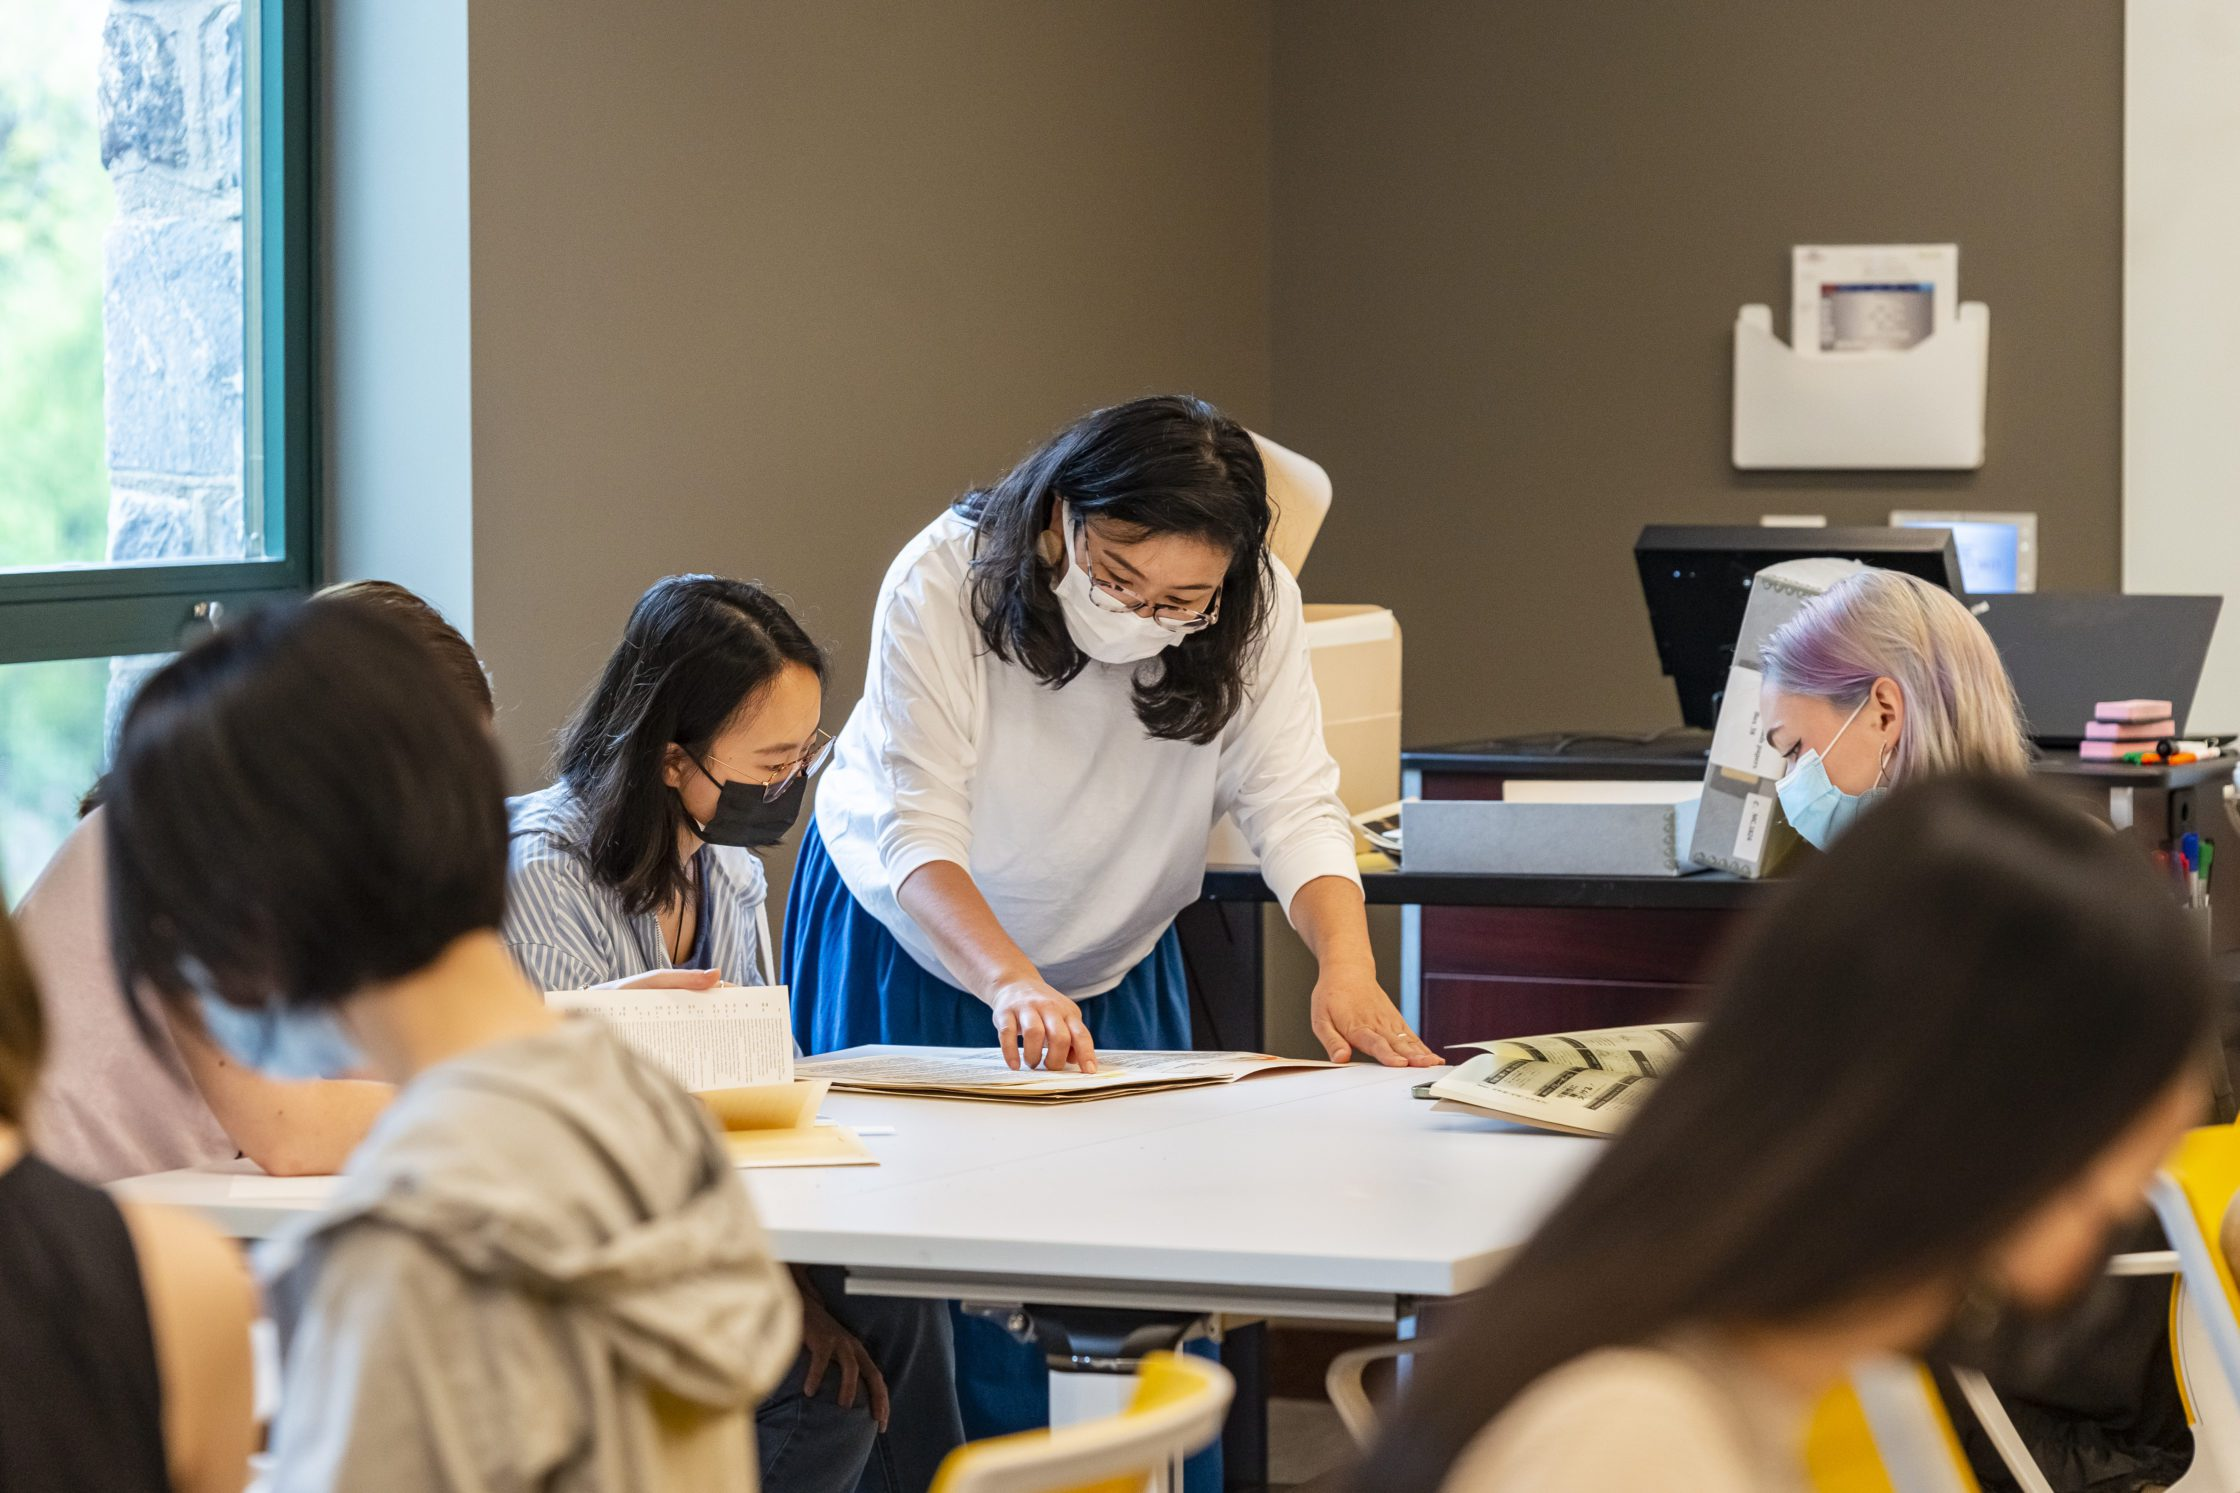 Kimiko Suzuki bends over a table in Lutnick Library going over documents with two masked students